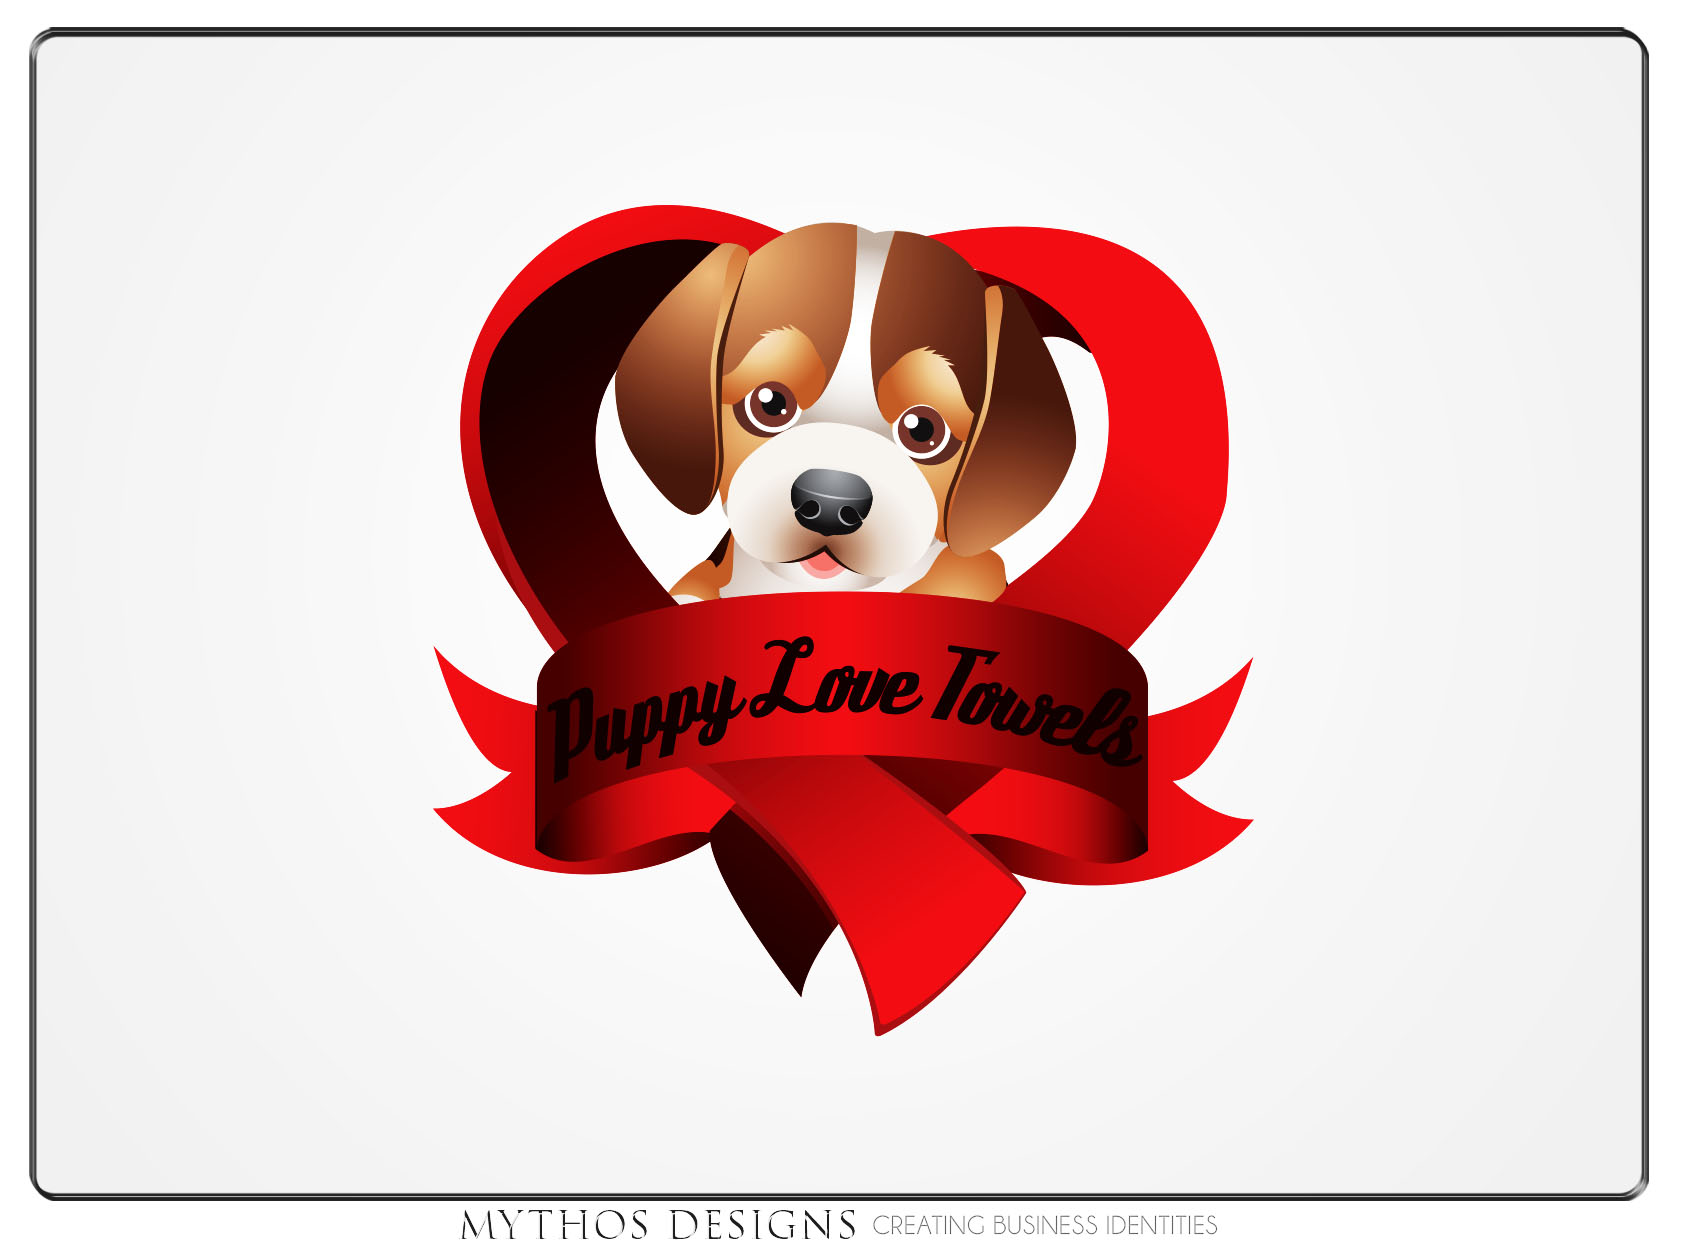 Logo Design by Mythos Designs - Entry No. 75 in the Logo Design Contest Artistic Logo Design for Puppy Love Towels.